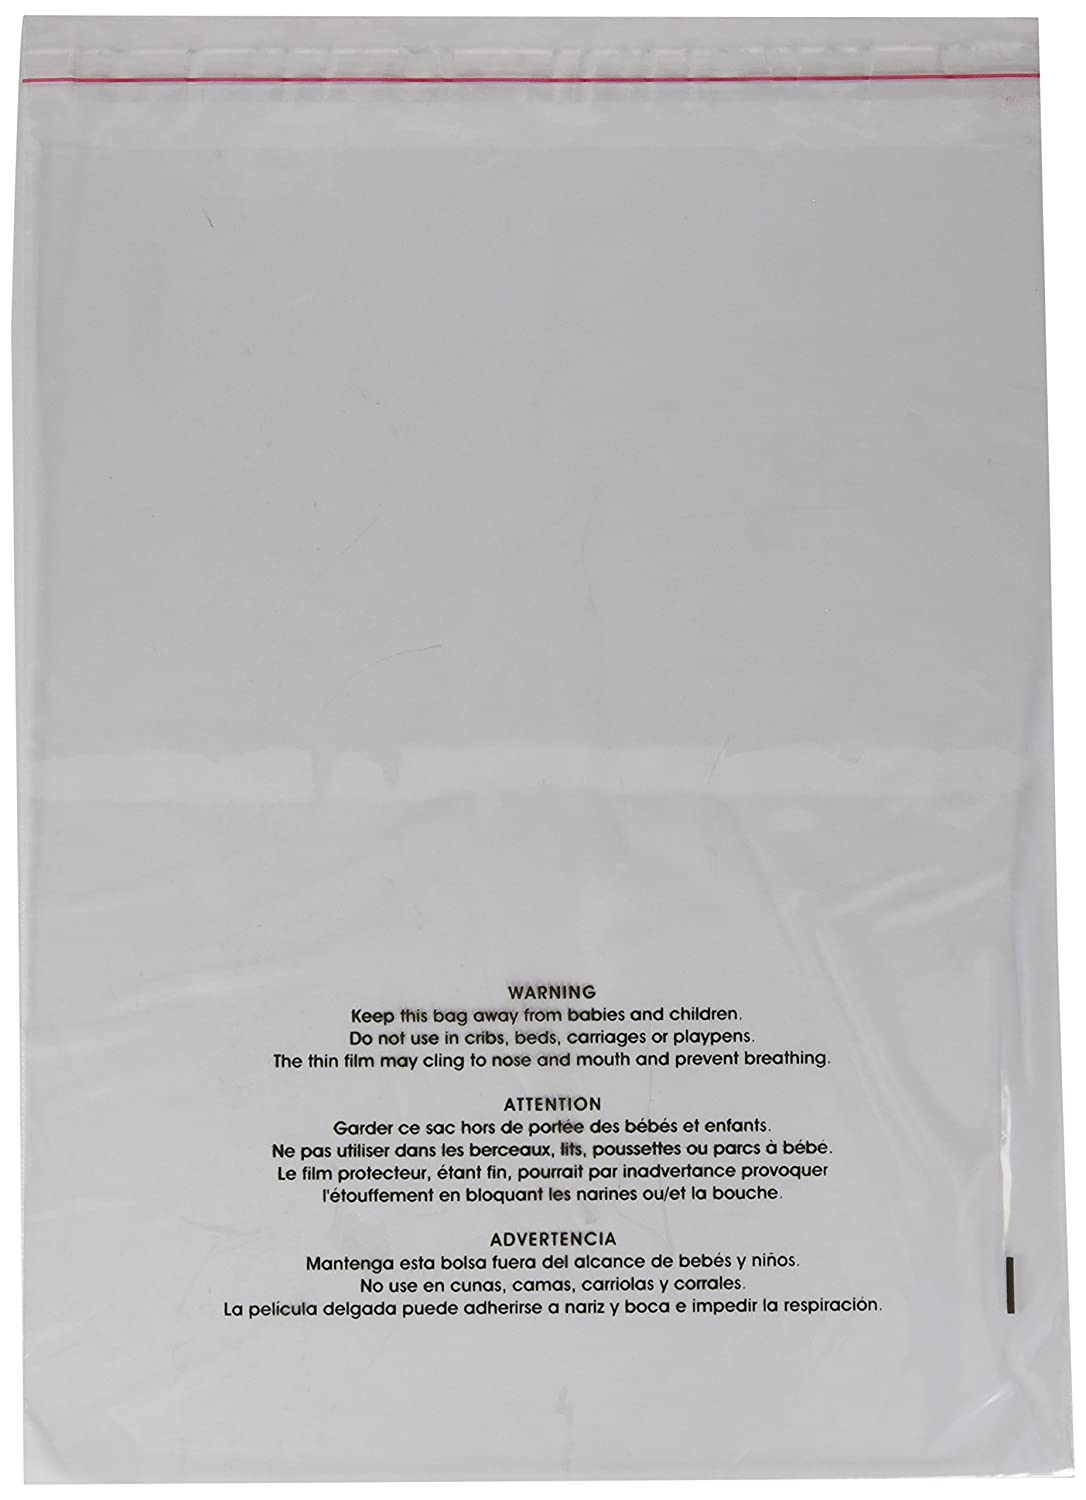 Uline Suffocation Warning Poly Bag, 1.5ml Self-sealed, 100 Count (11x14) Manhattan Comfort S-19131